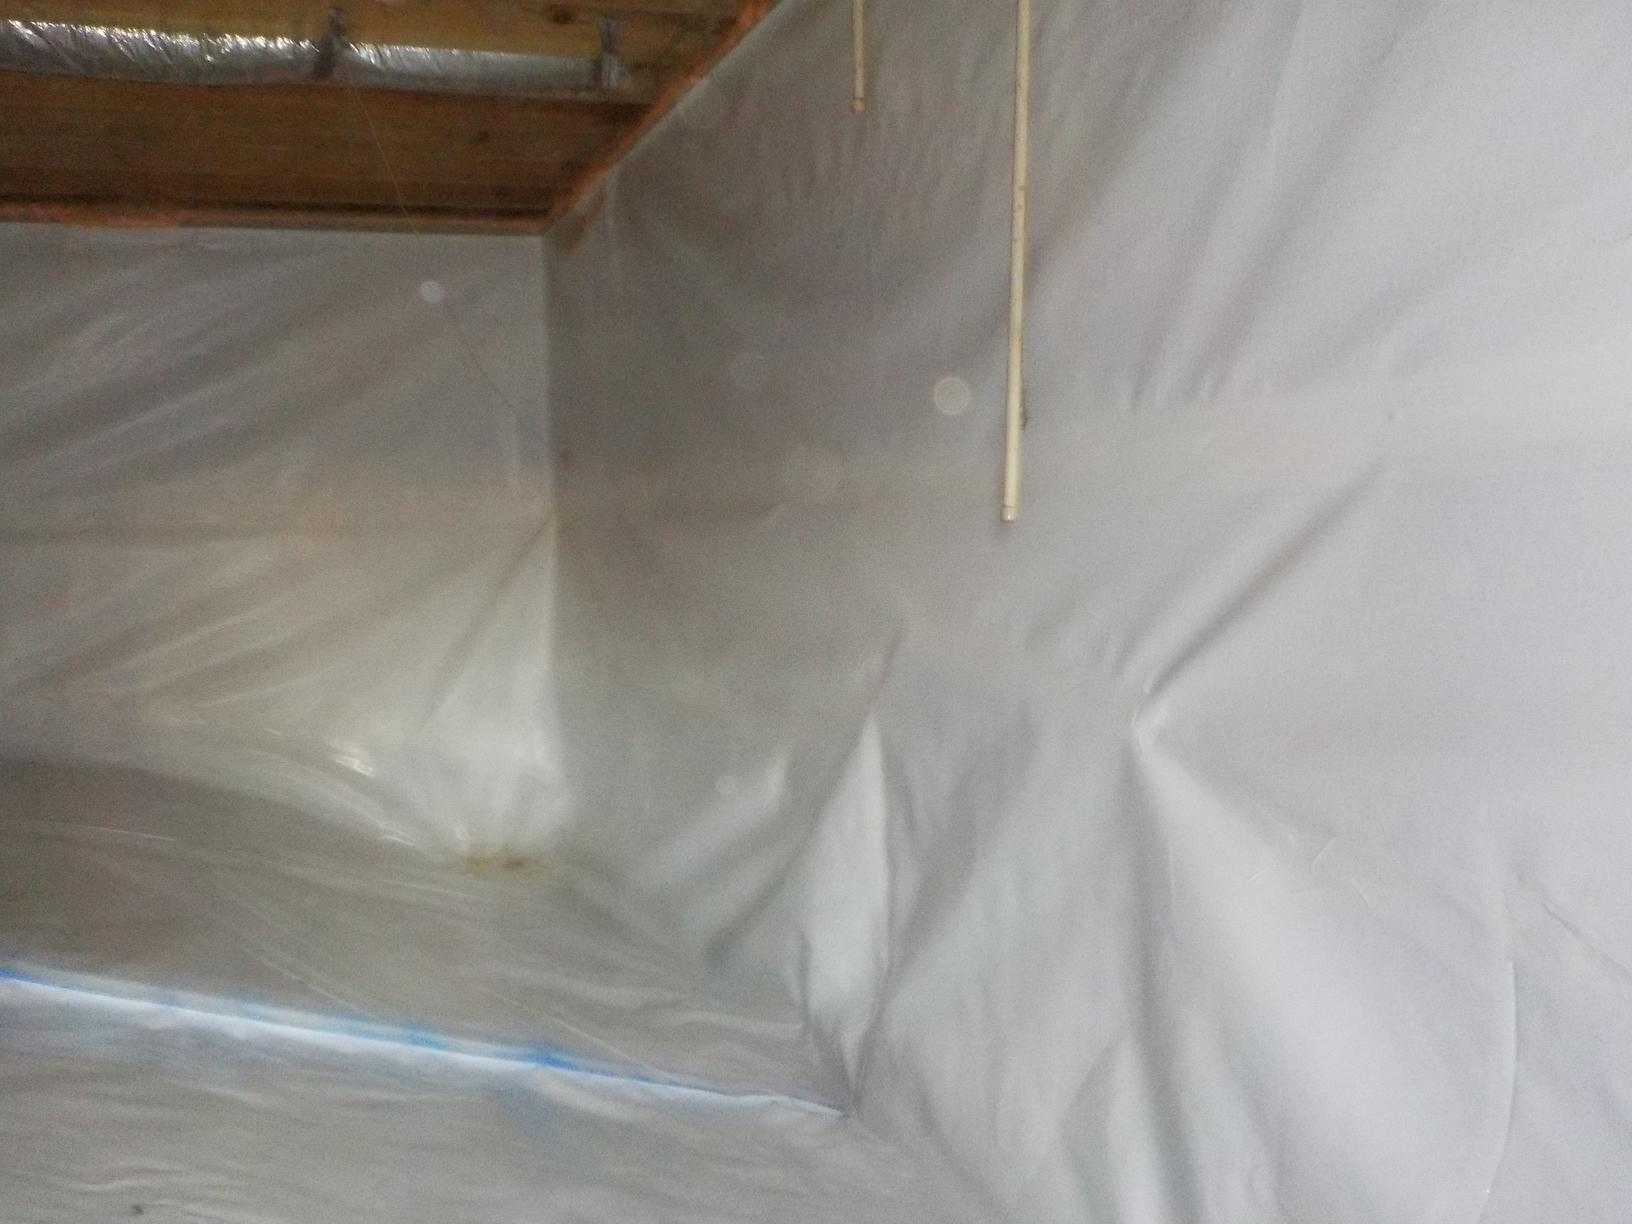 Clean Crawl Space in Monterey TN - After Photo